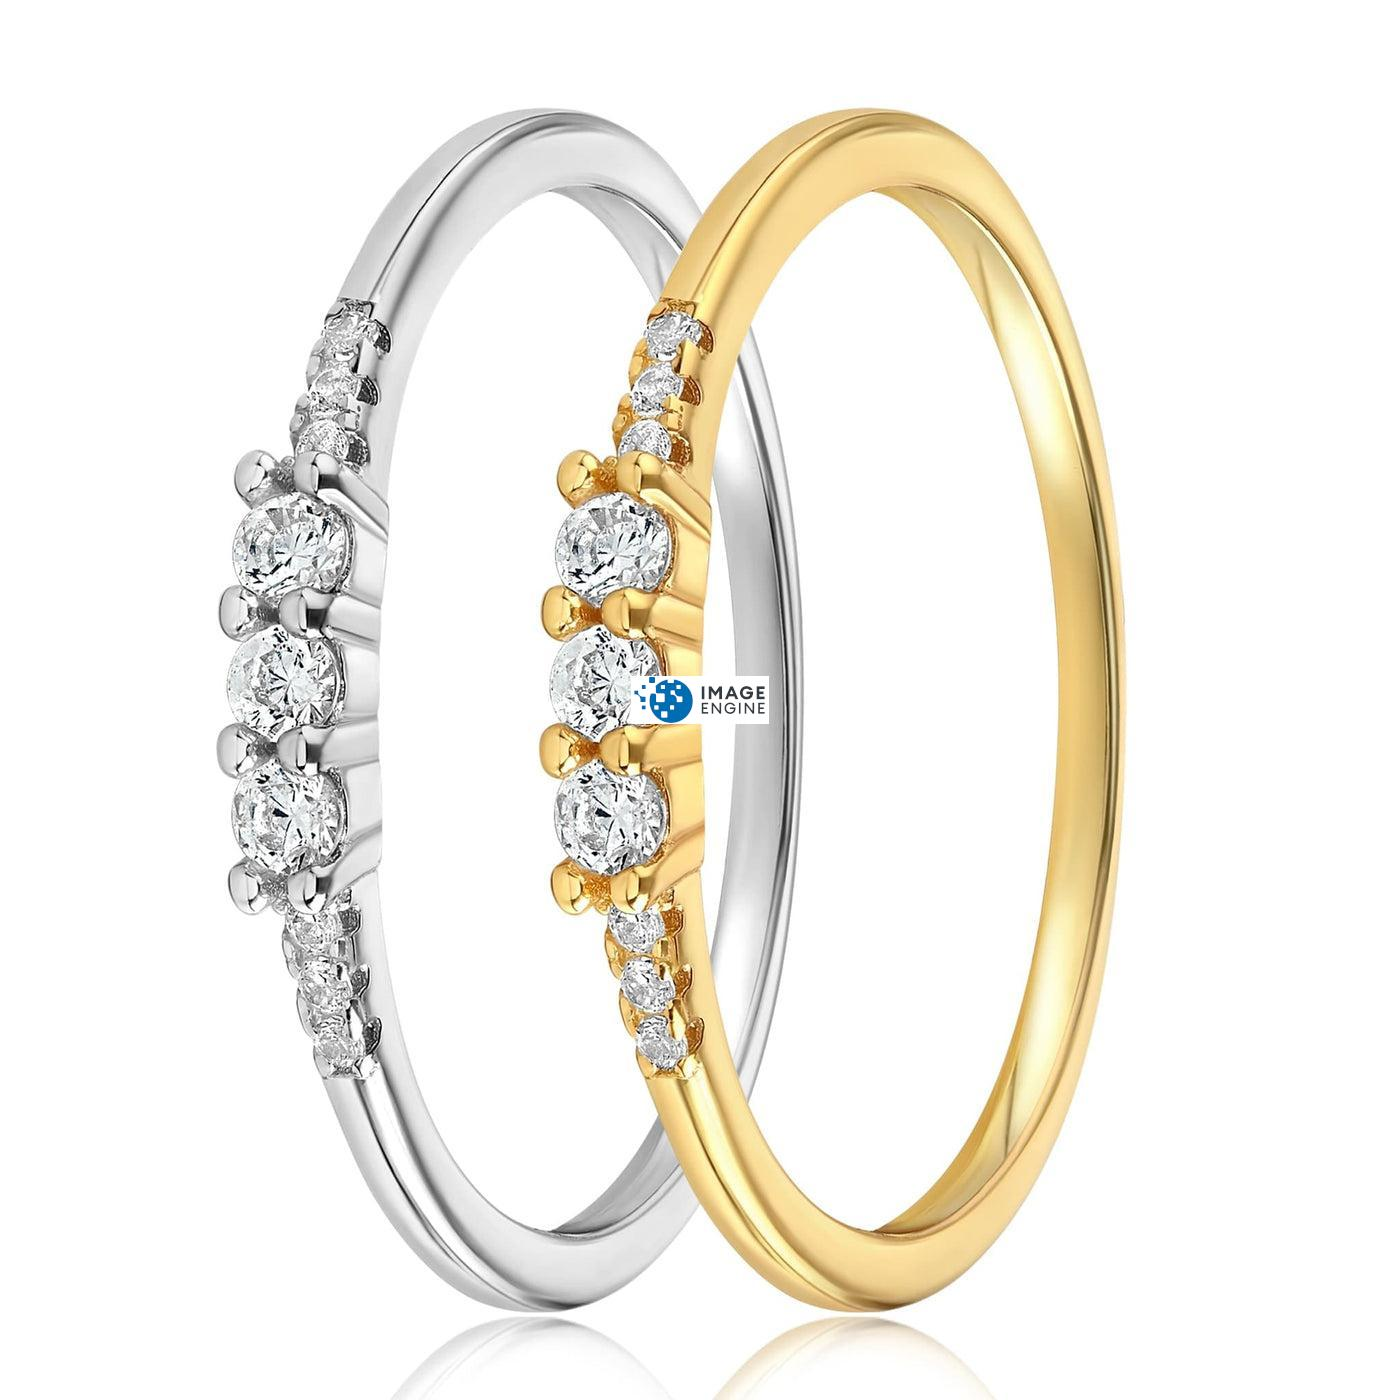 Emie Ring - Side by Side - 925 Sterling Silver and 18K Gold Vermeil